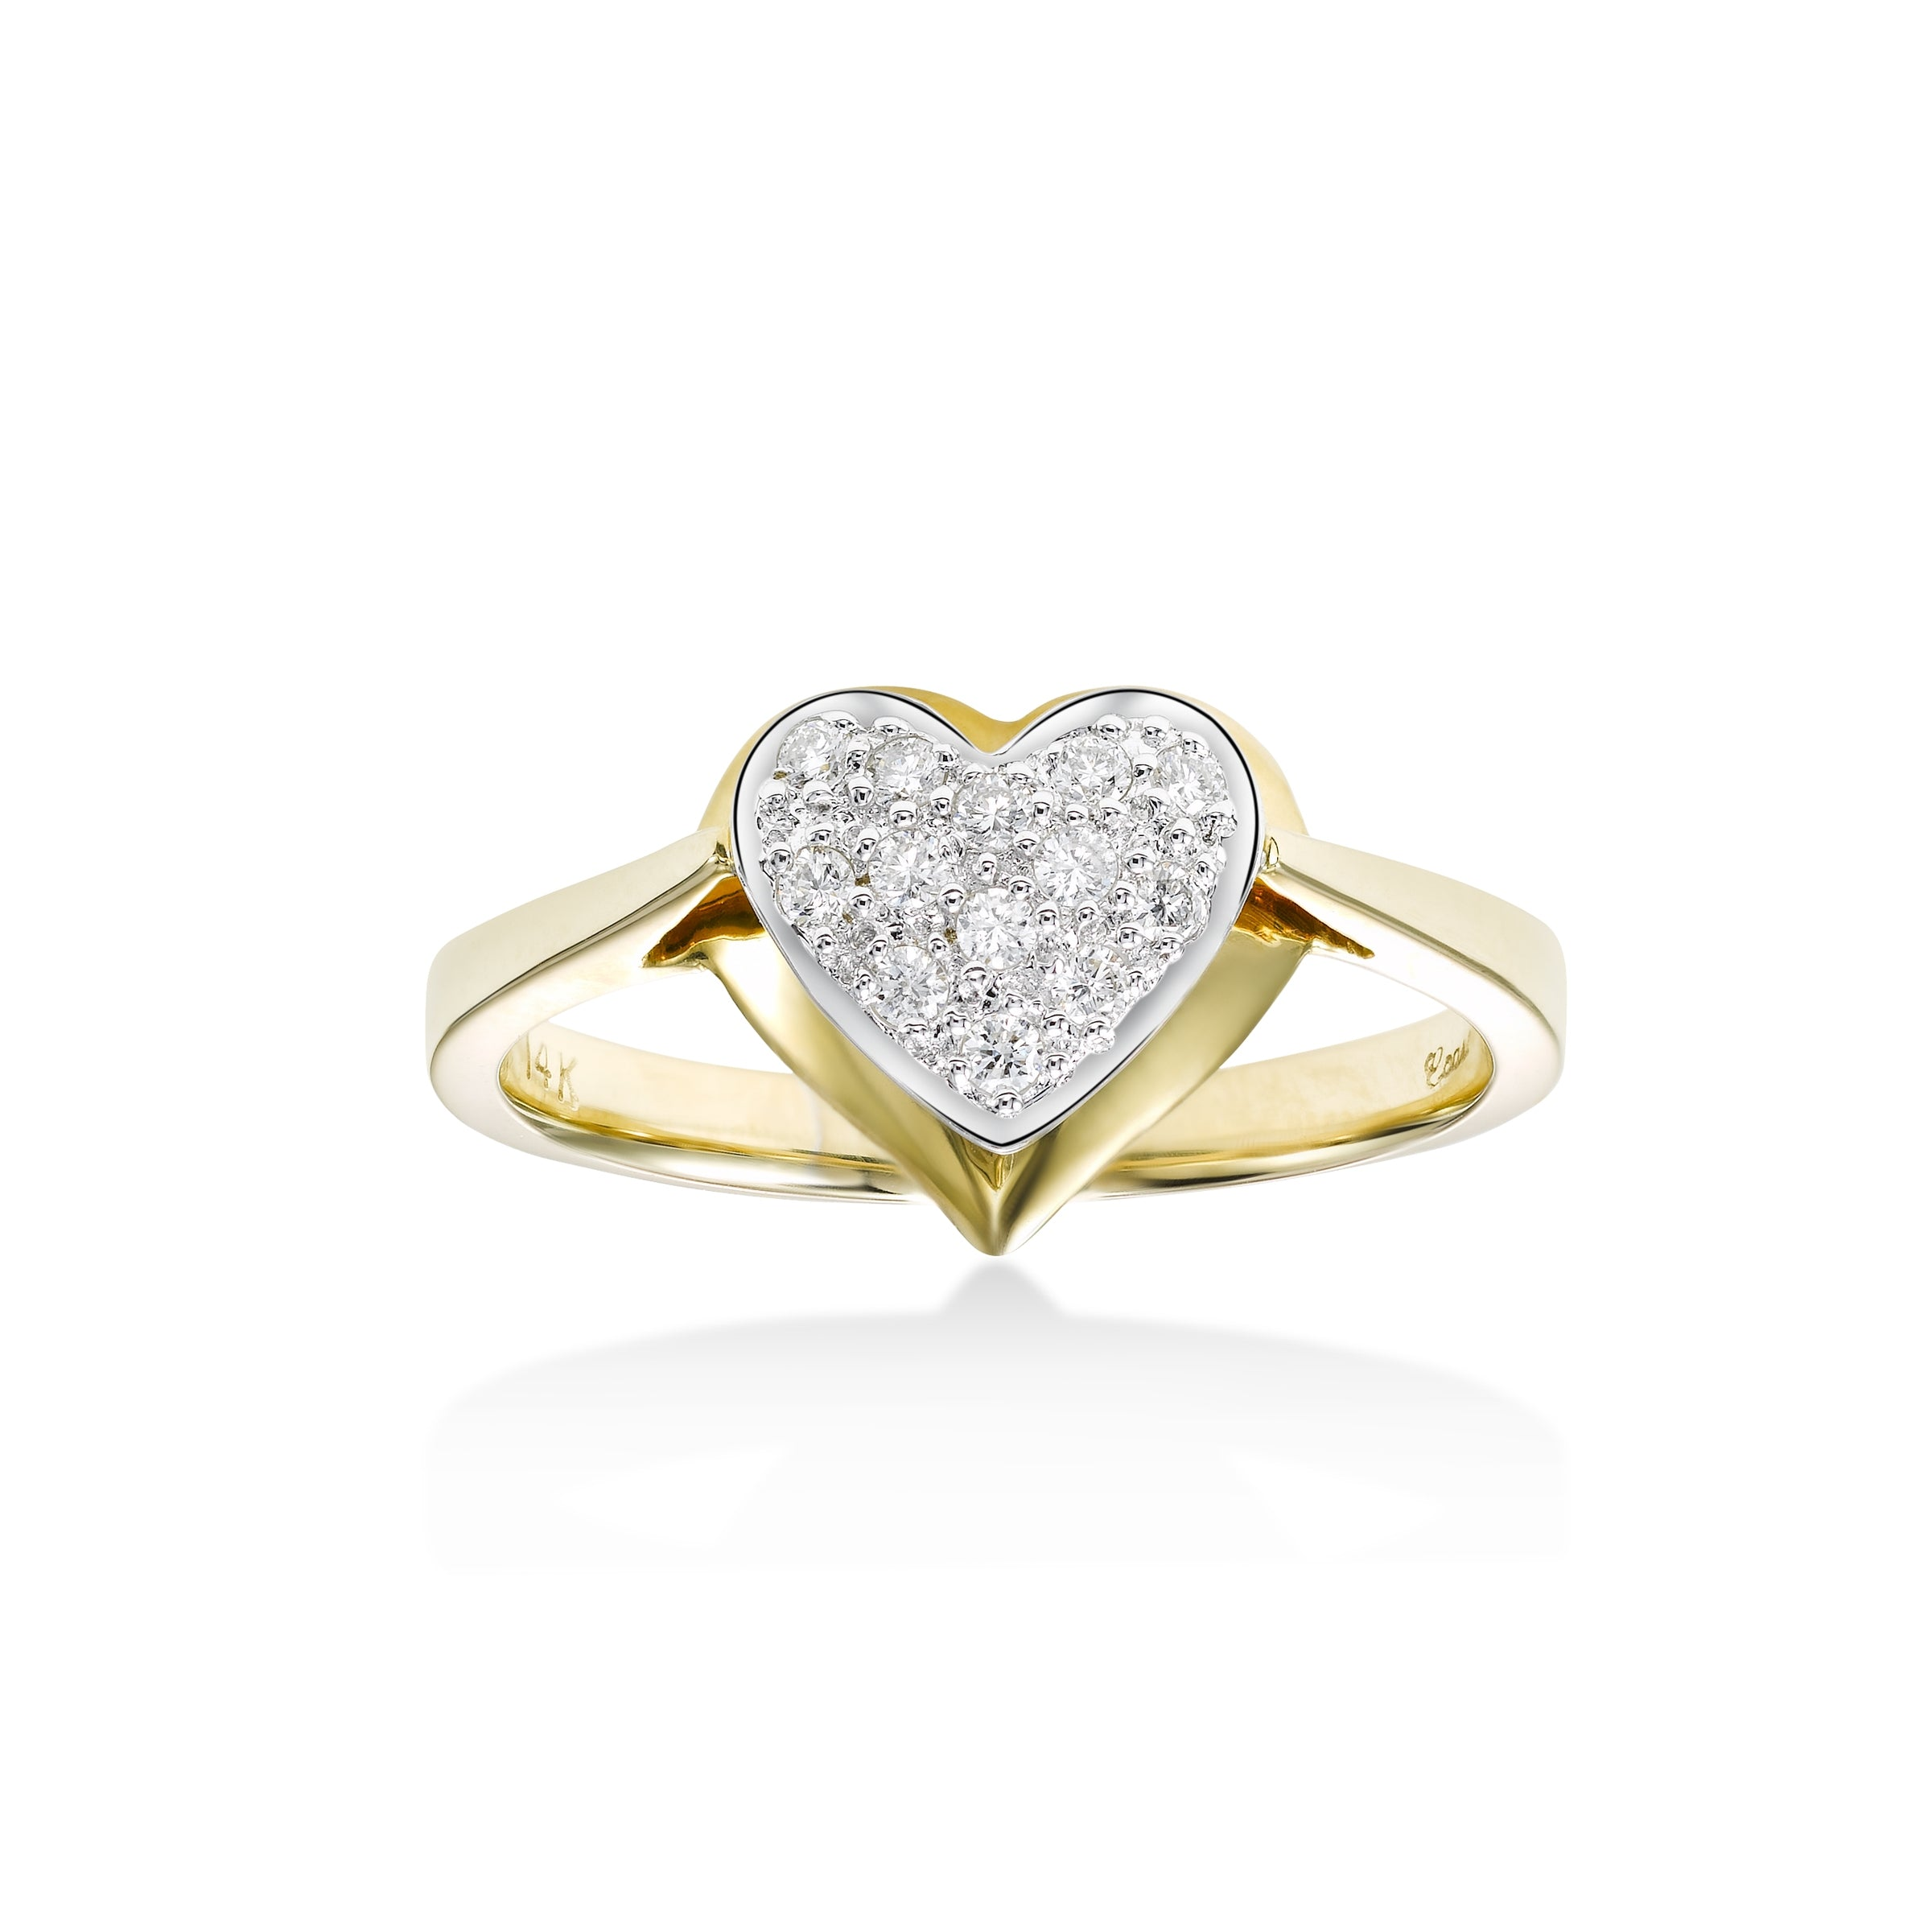 Pavé Diamond Floating Heart Ring, 14 Karat Gold